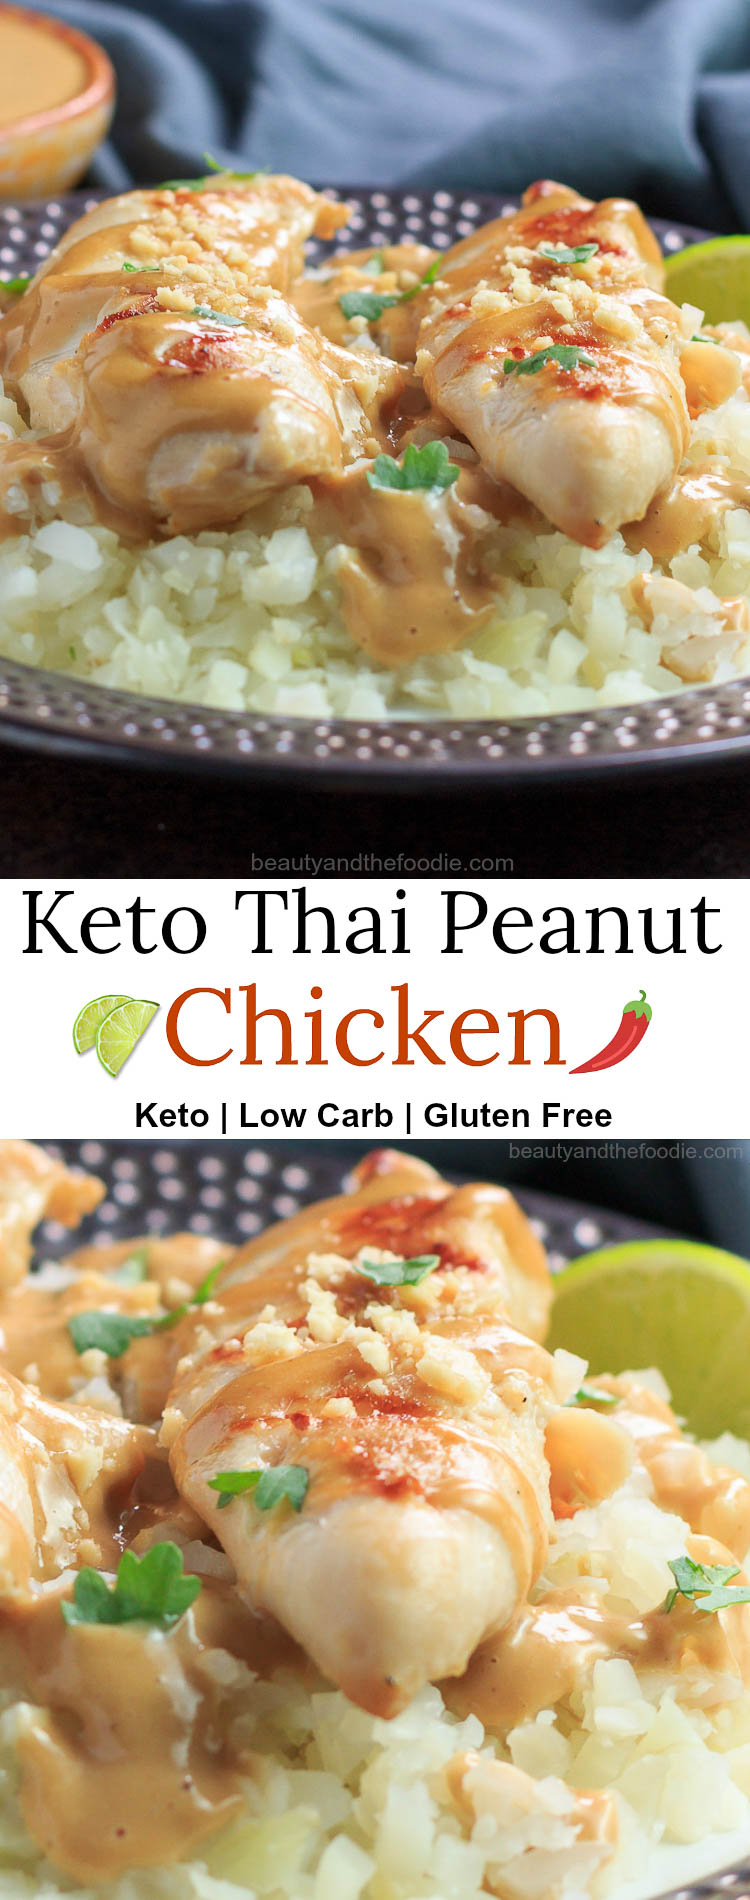 Keto Thai Peanut Chicken- keto , low carb with paleo & nut free option.